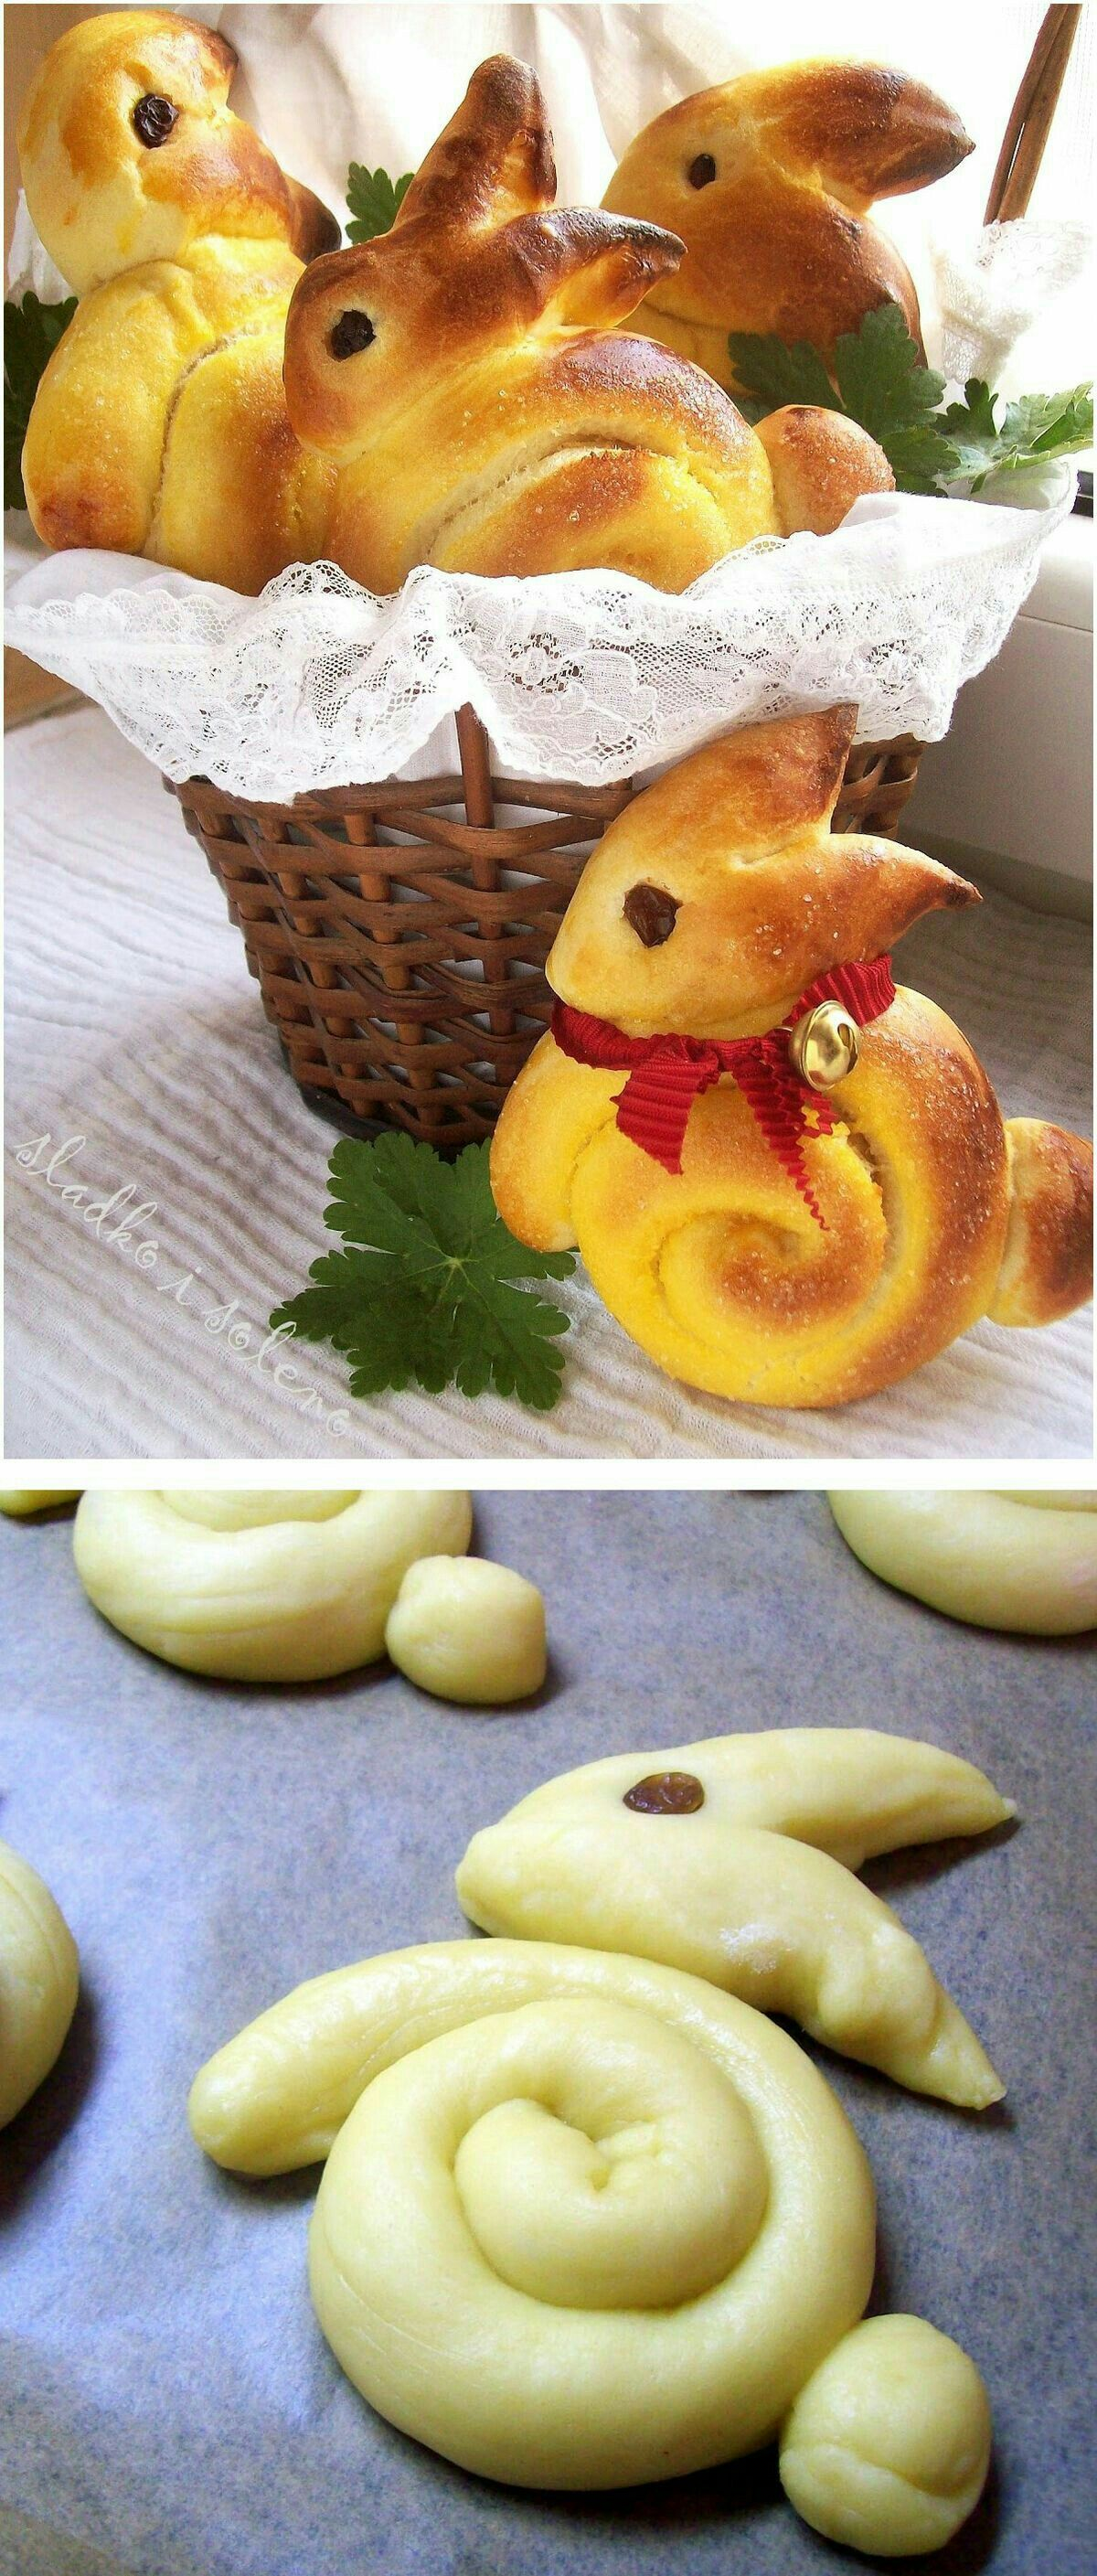 Pin by gaster on creative food pinterest food food bunny rollseaster dinnereaster forumfinder Images